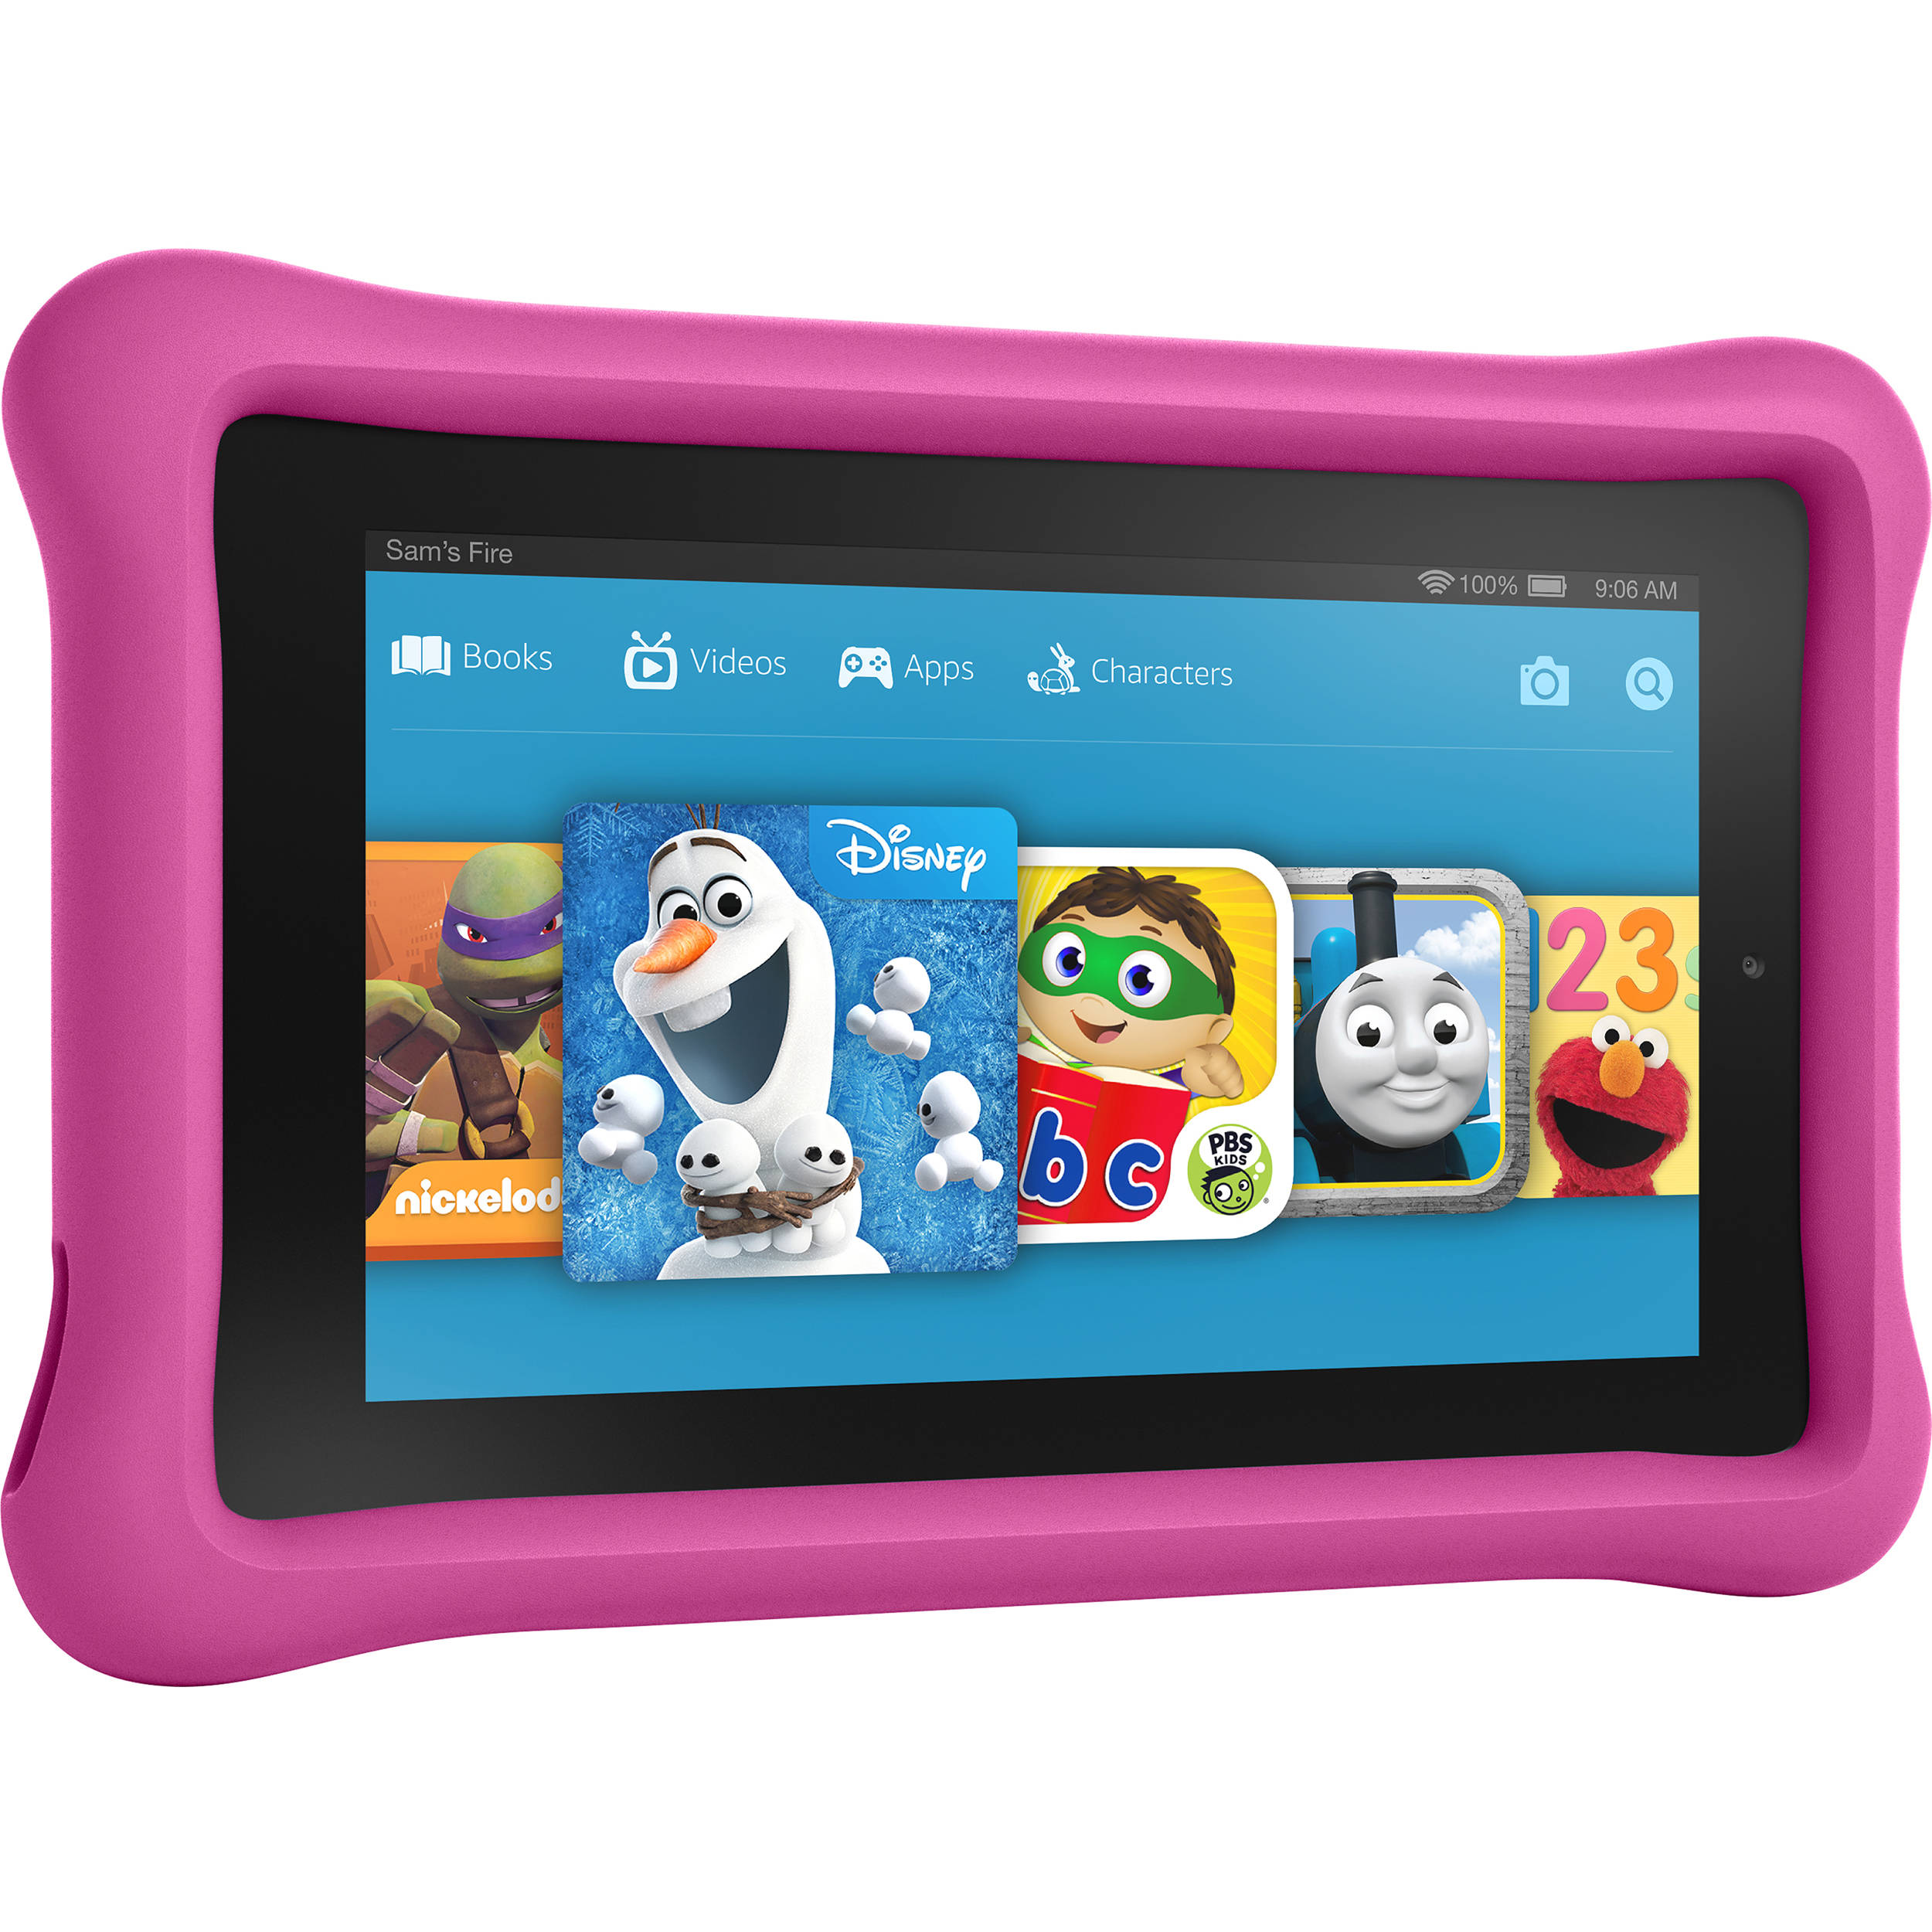 Kindle 7 Quot Fire Kids Edition Tablet Pink B018y226xo B Amp H